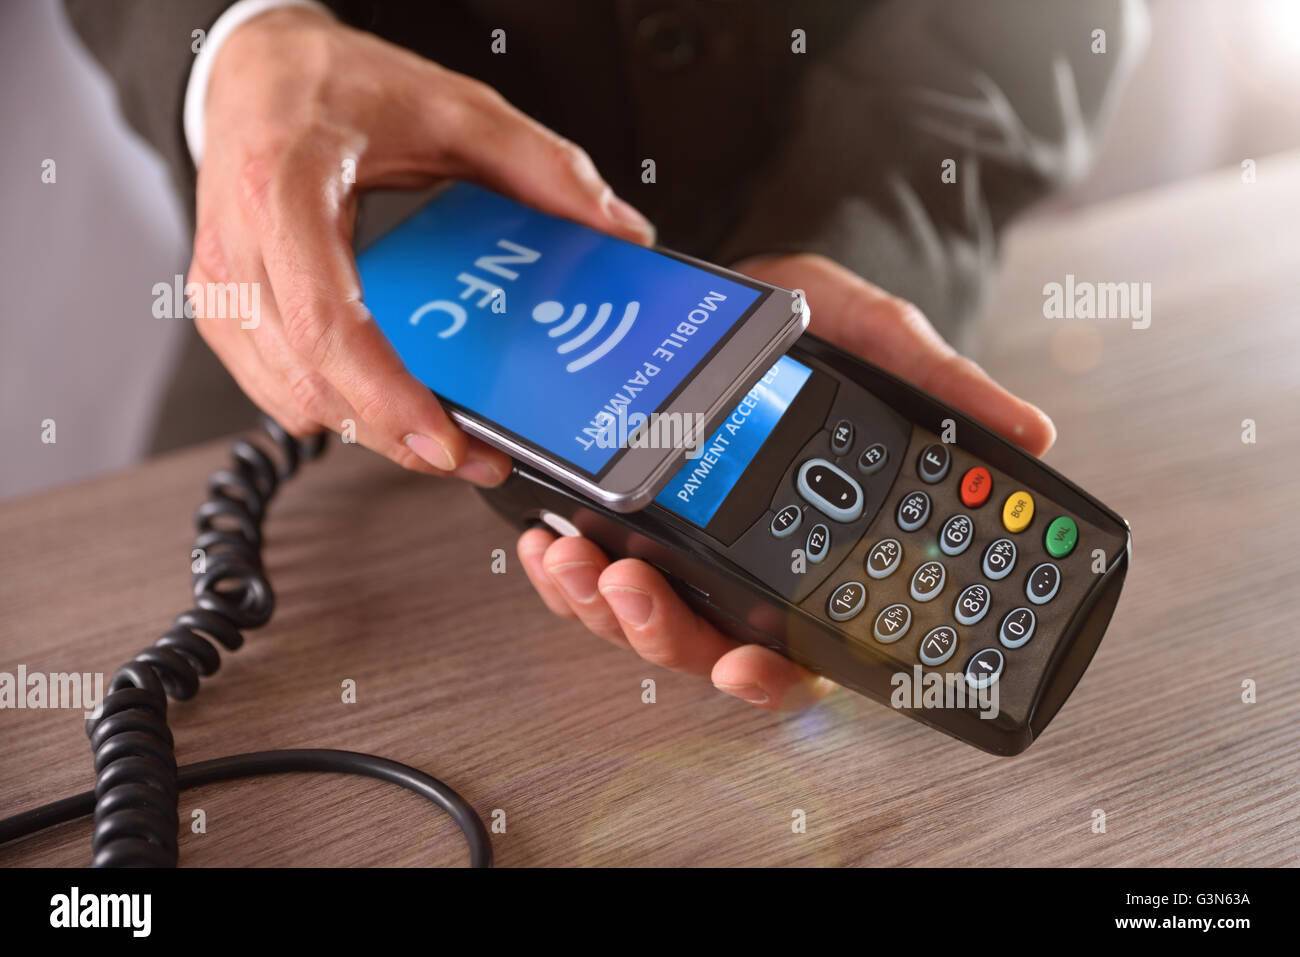 Payment on a trade through mobile and NFC technology. Front elevated view. Horizontal composition. - Stock Image